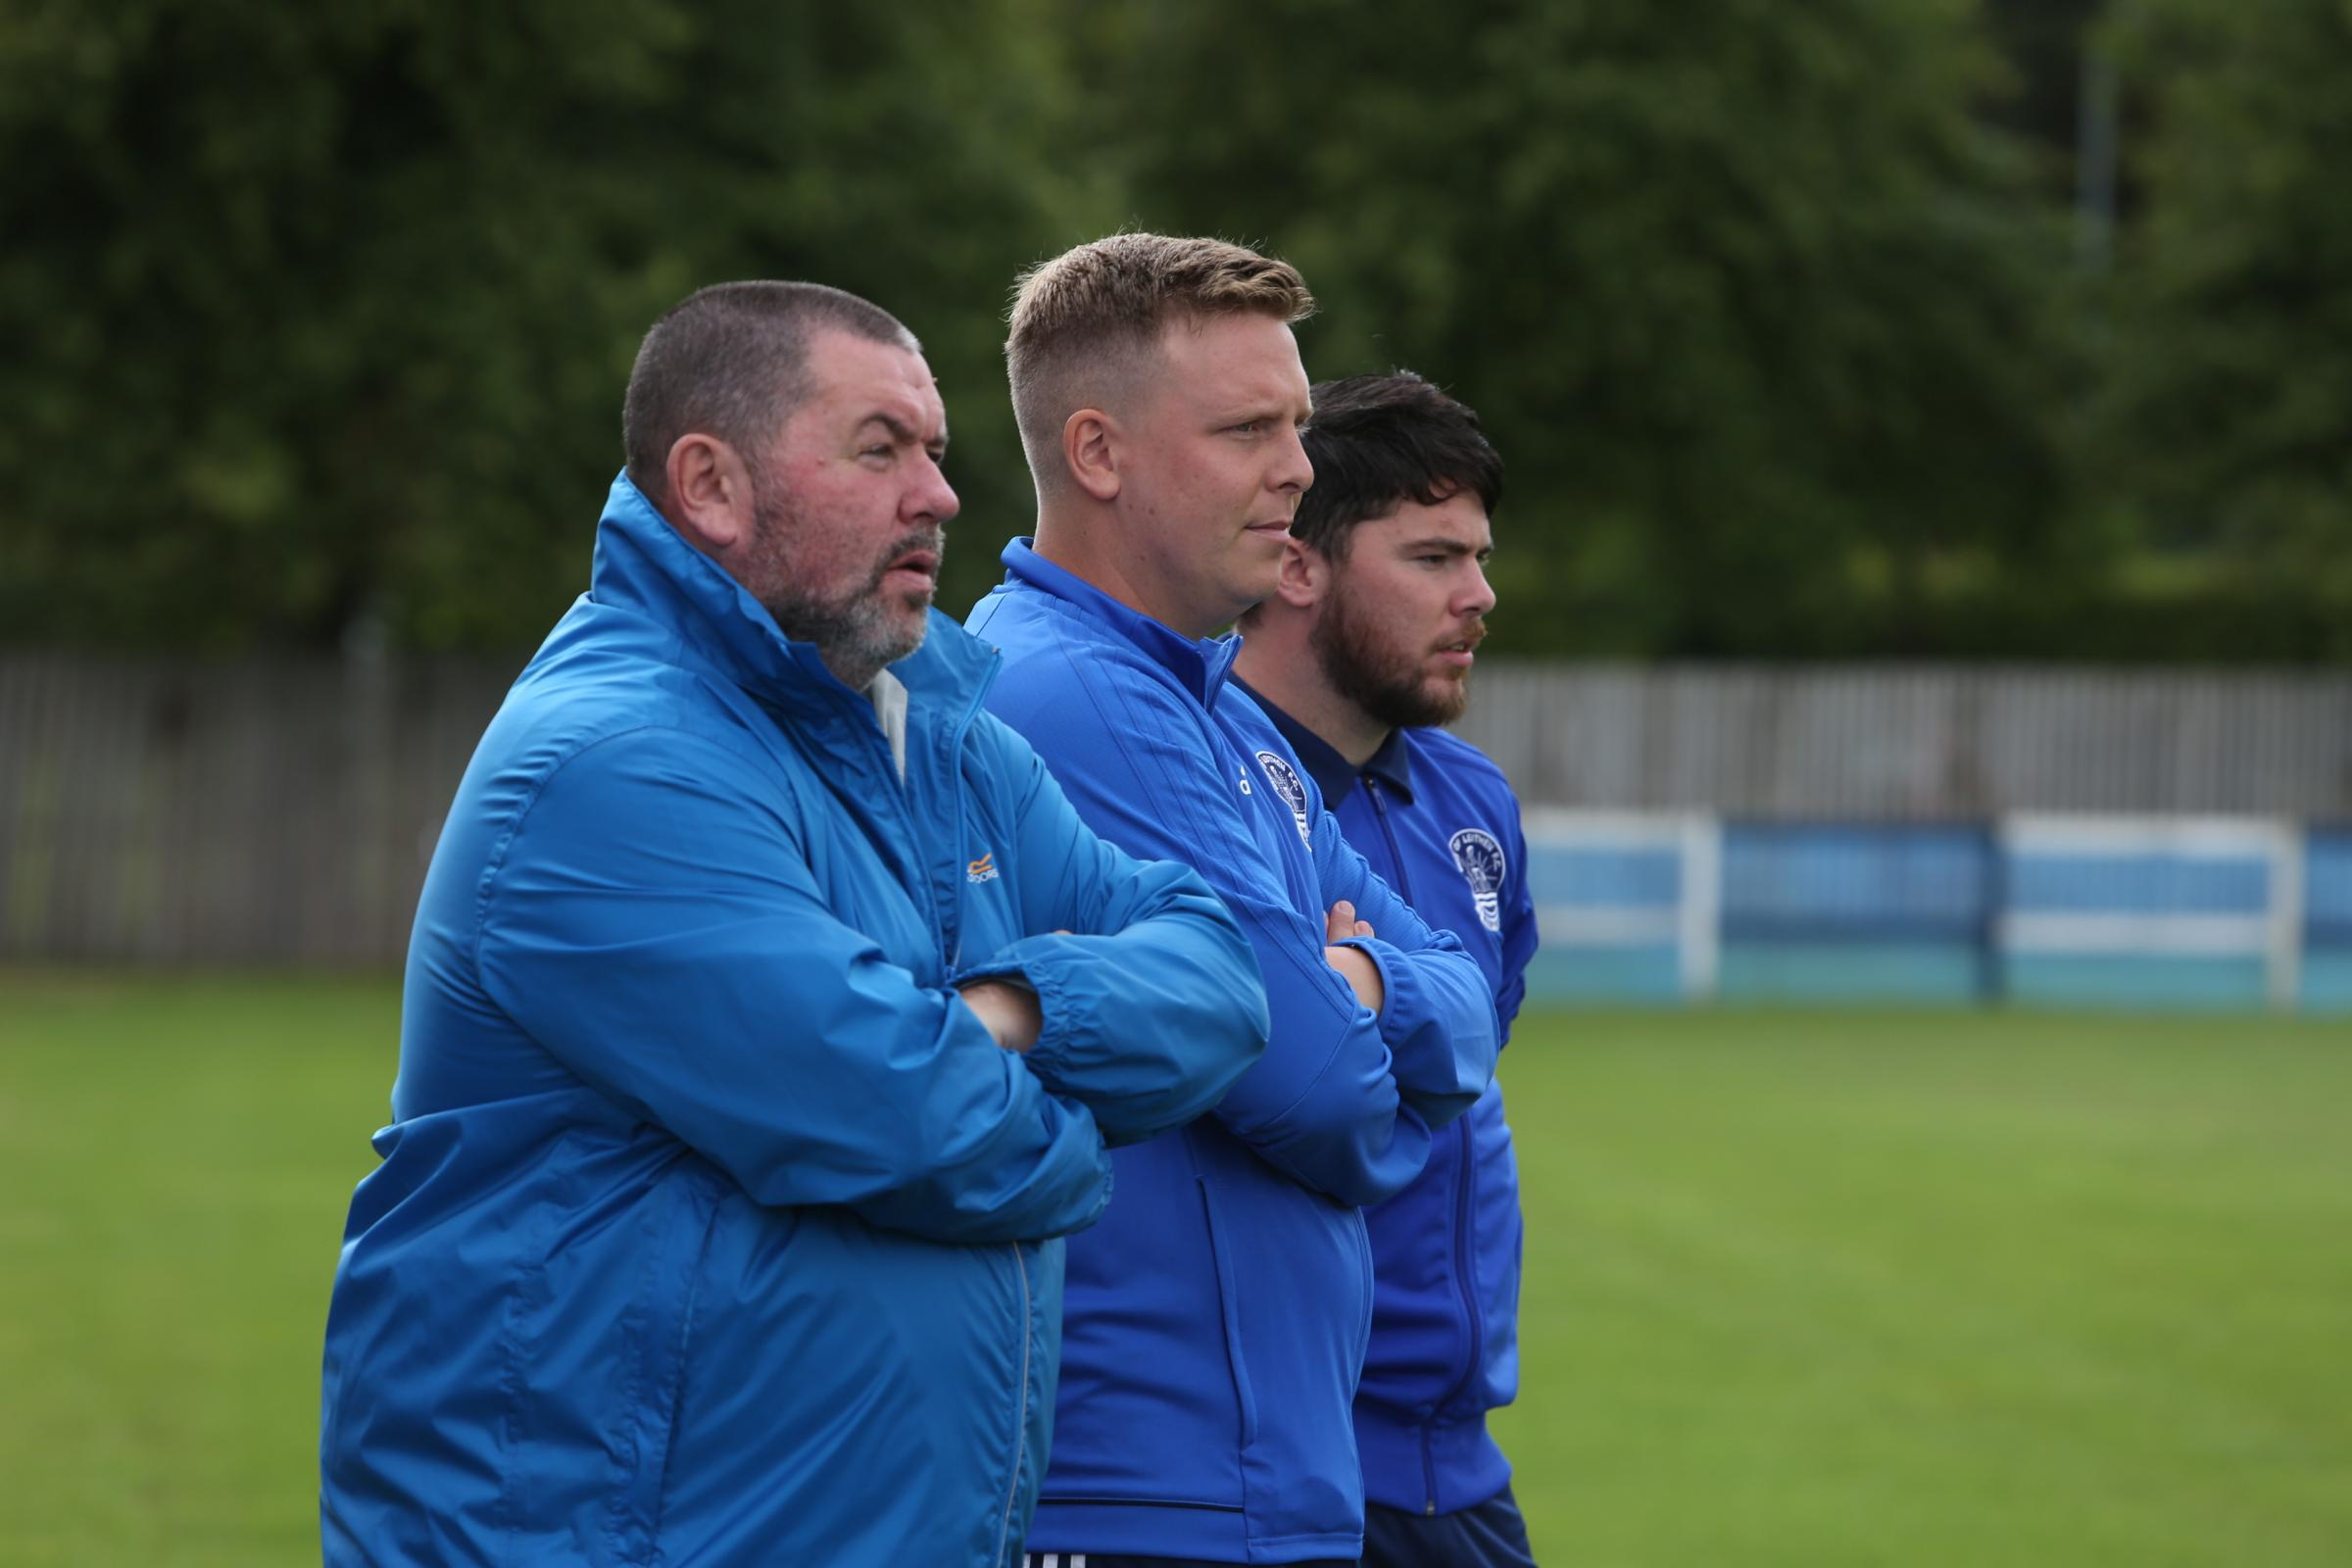 Vale coaches watch on as Jeanfield Swifts came from behind to win